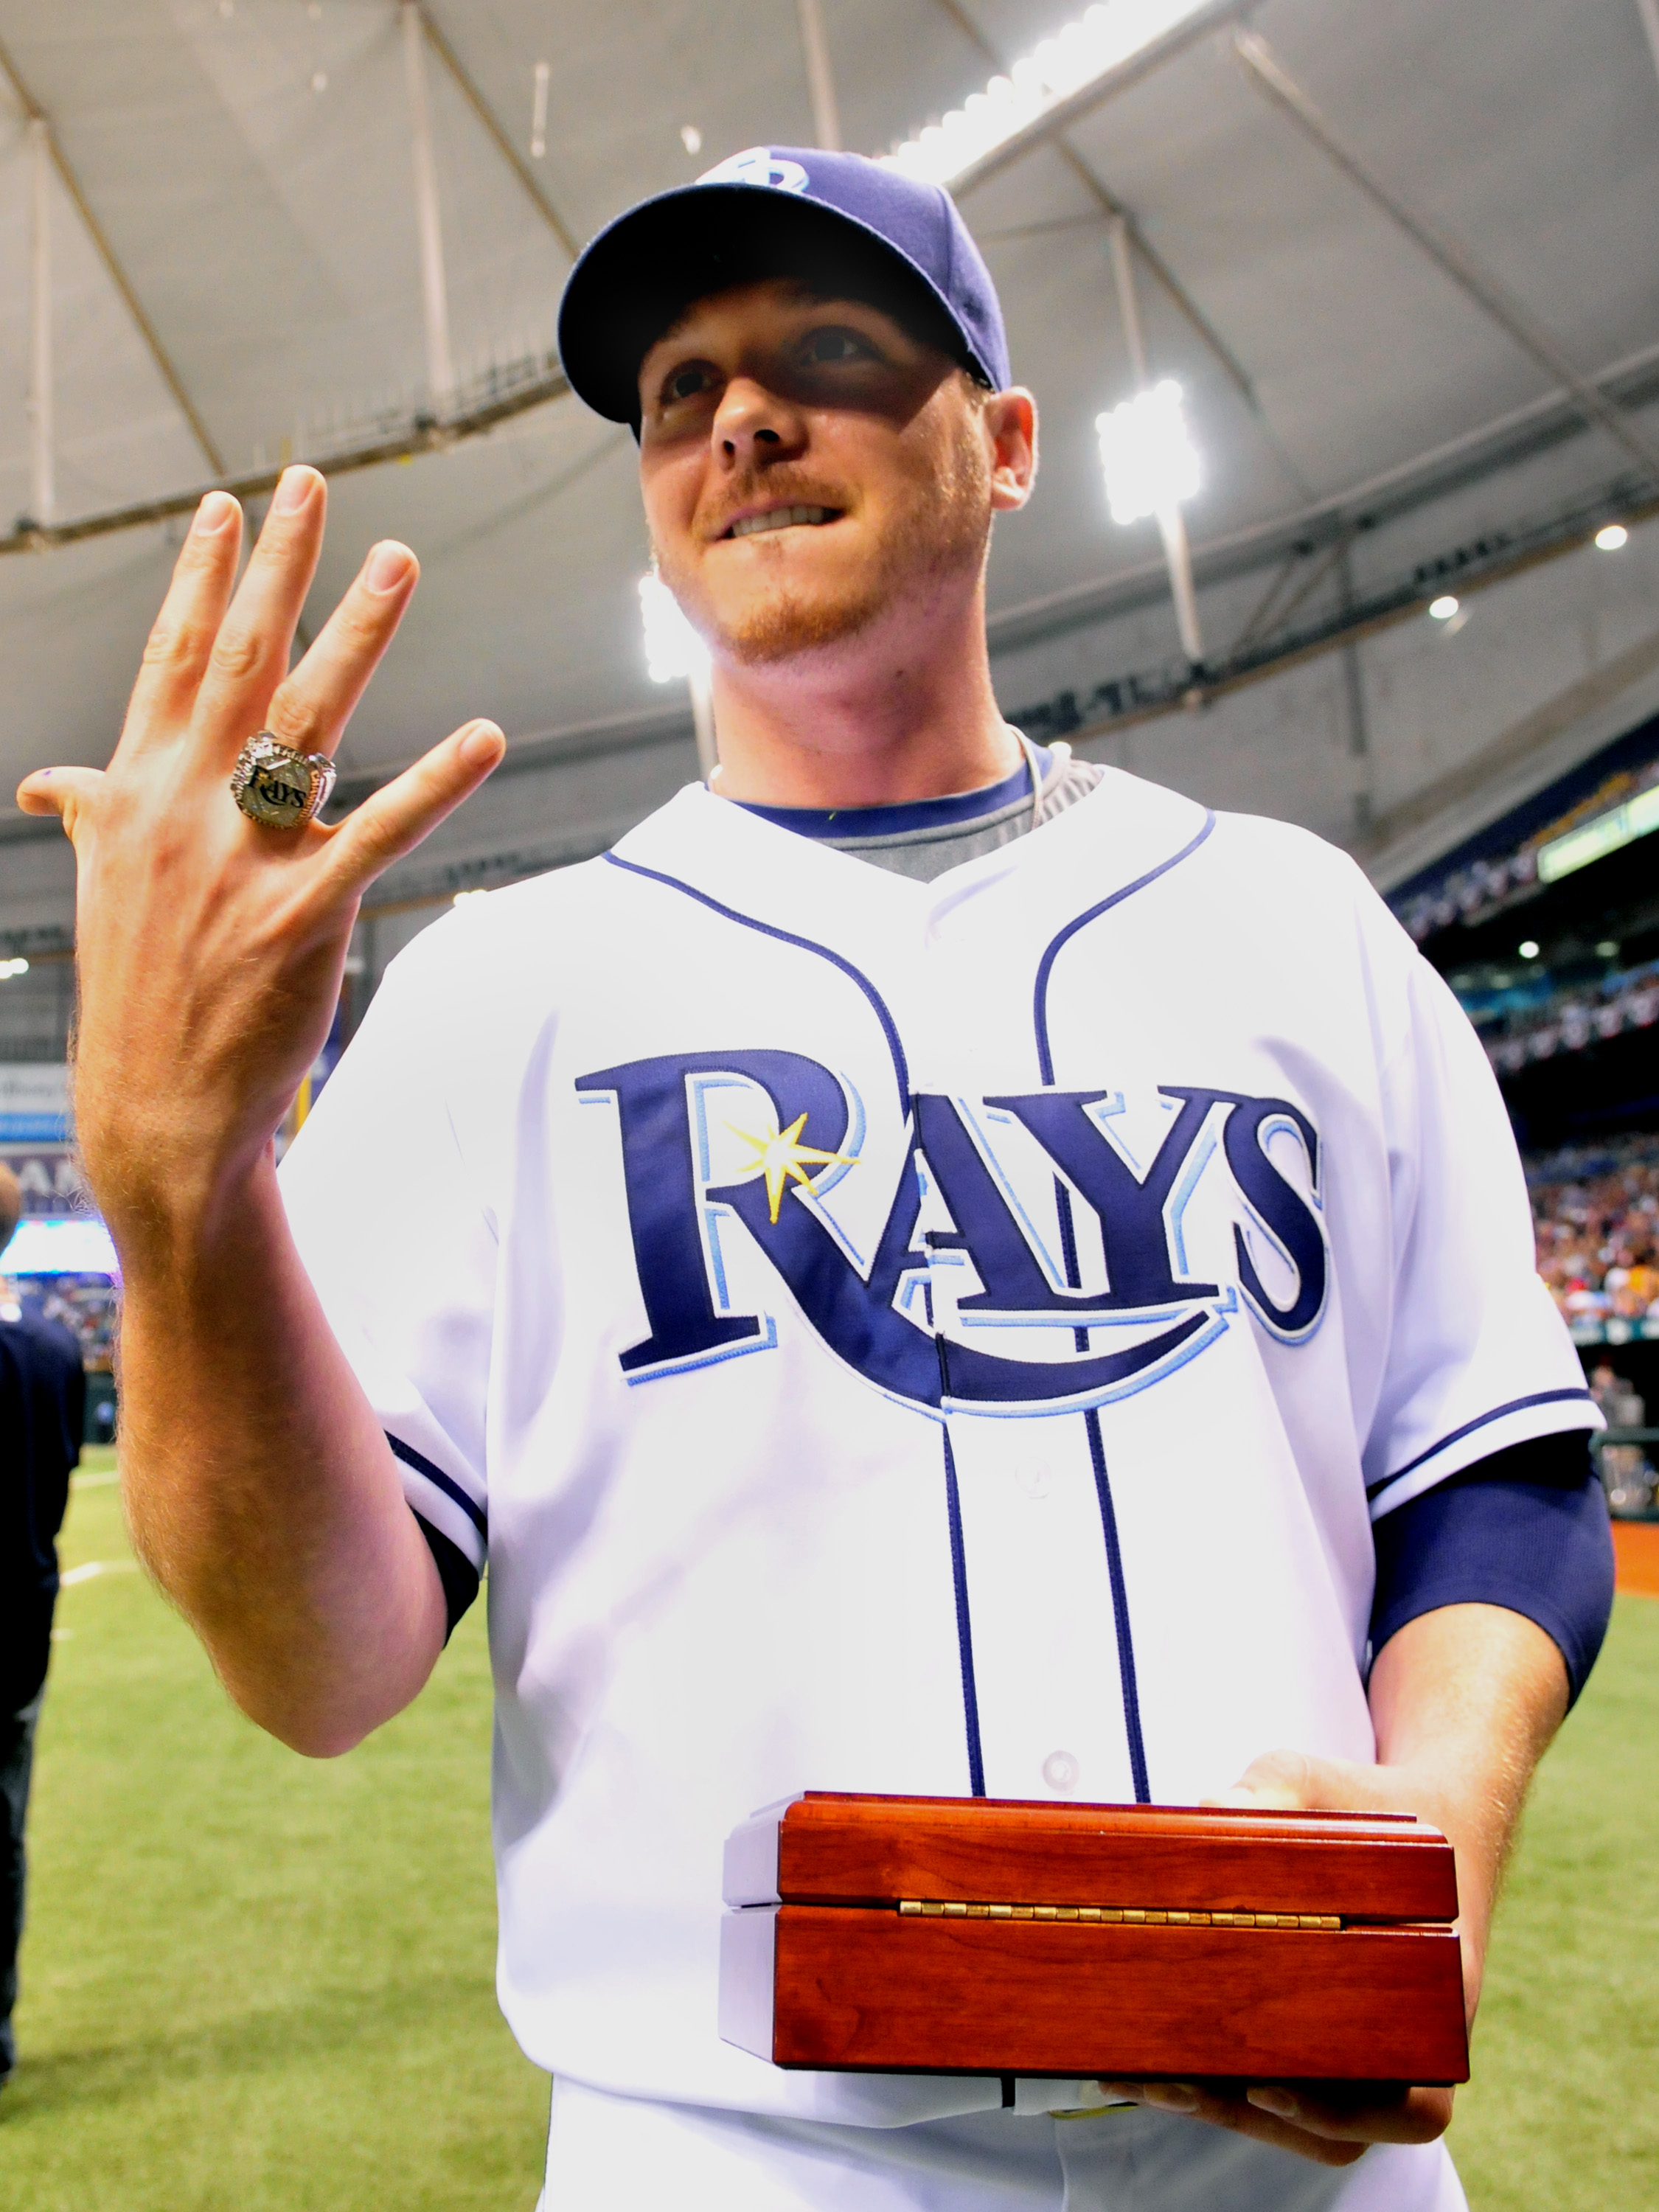 ST. PETERSBURG, FL - APRIL 14:  Pitcher Scott Kazmir #19 of the Tampa Bay Rays shows off his 2008 AL championship ring before play  against the New York Yankees April 14, 2009 in St. Petersburg, Florida.  (Photo by Al Messerschmidt/Getty Images)